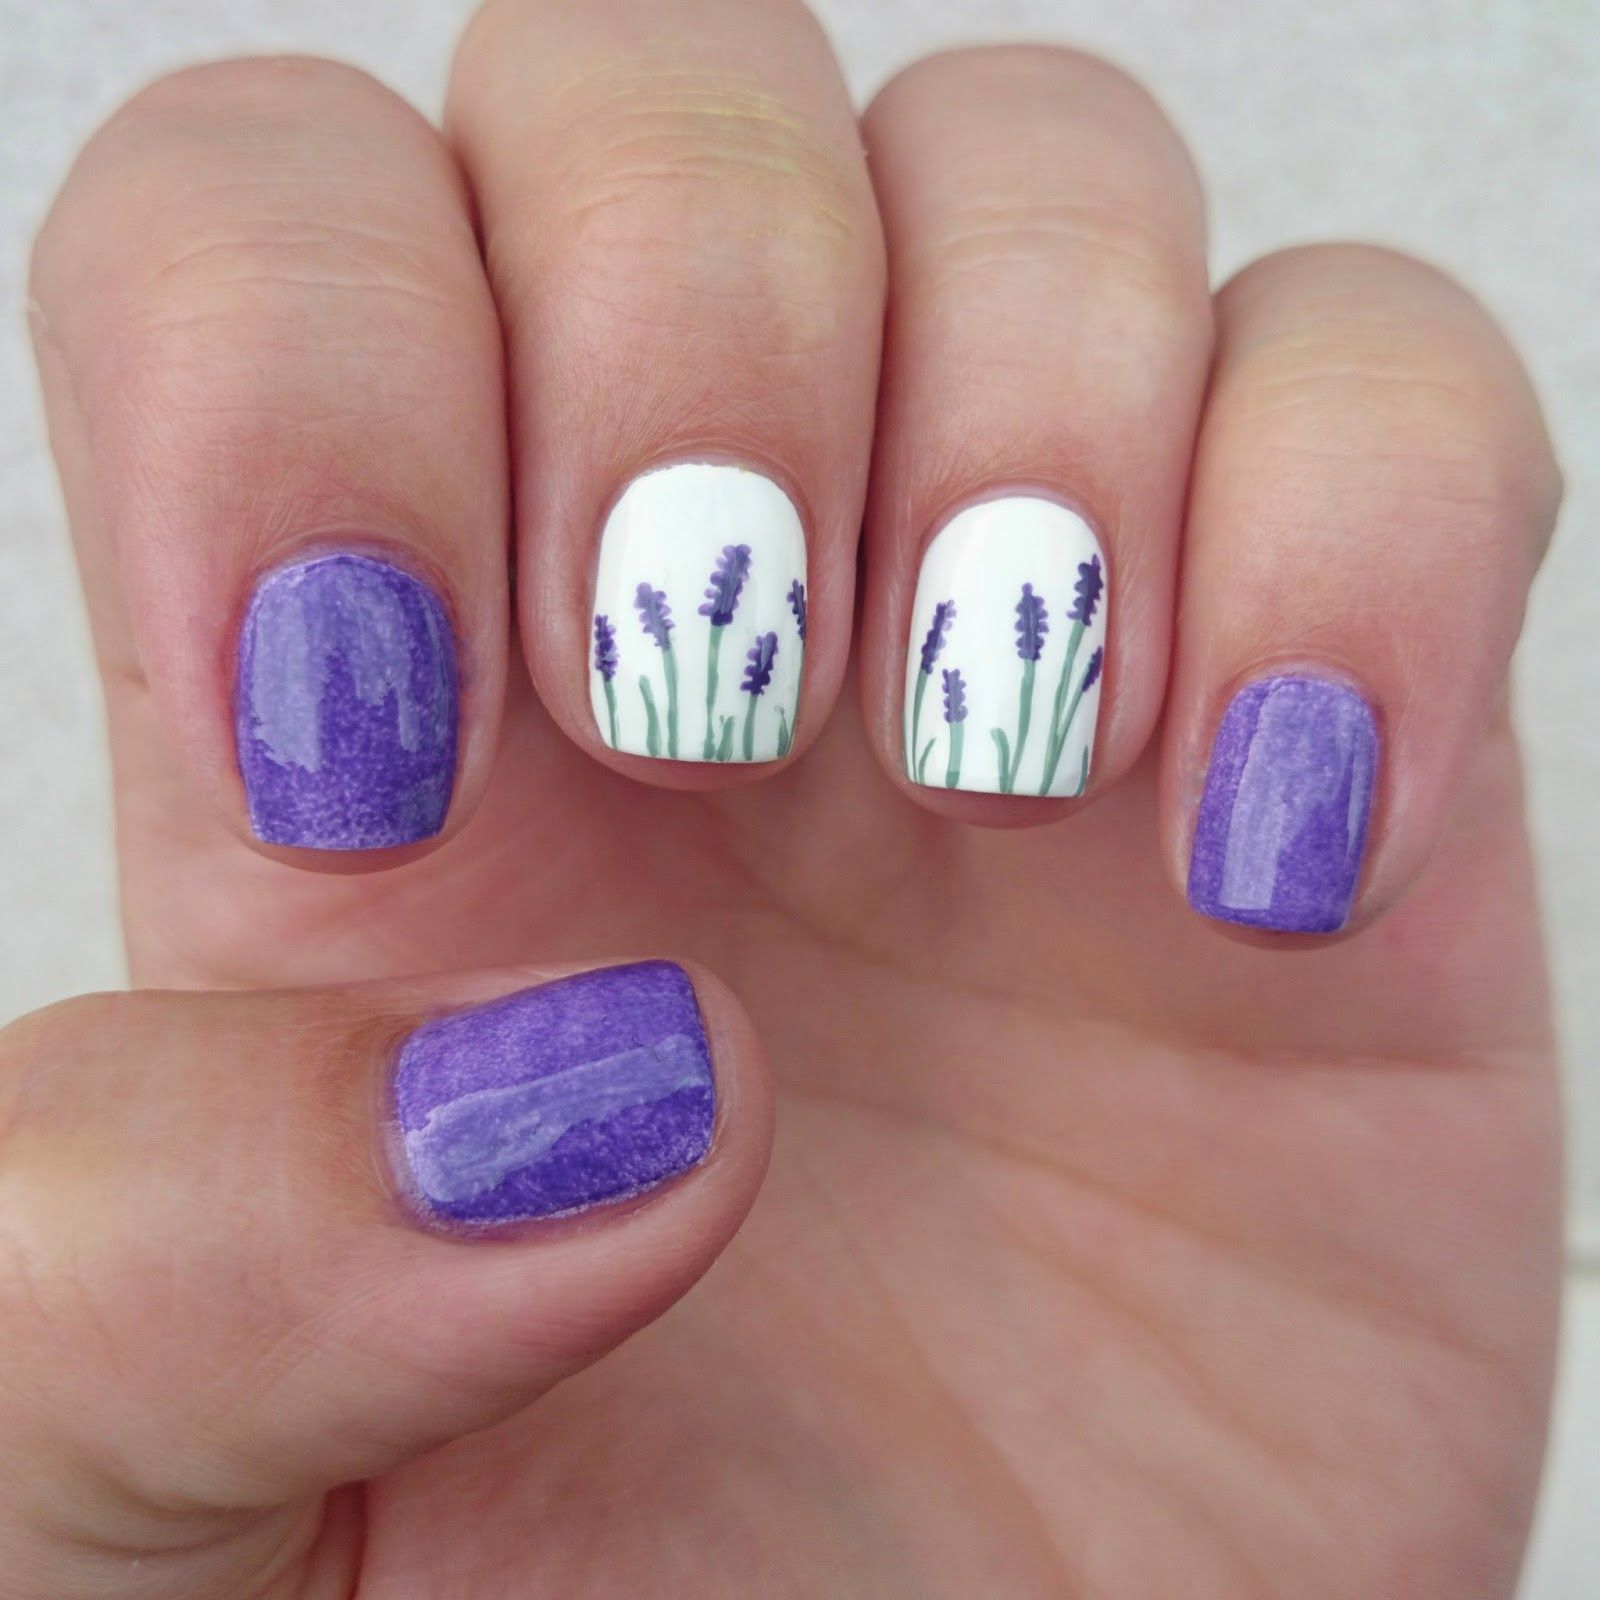 lavender nails | Dahlia Nails: Lovely Lavender | Hair and Nails ...